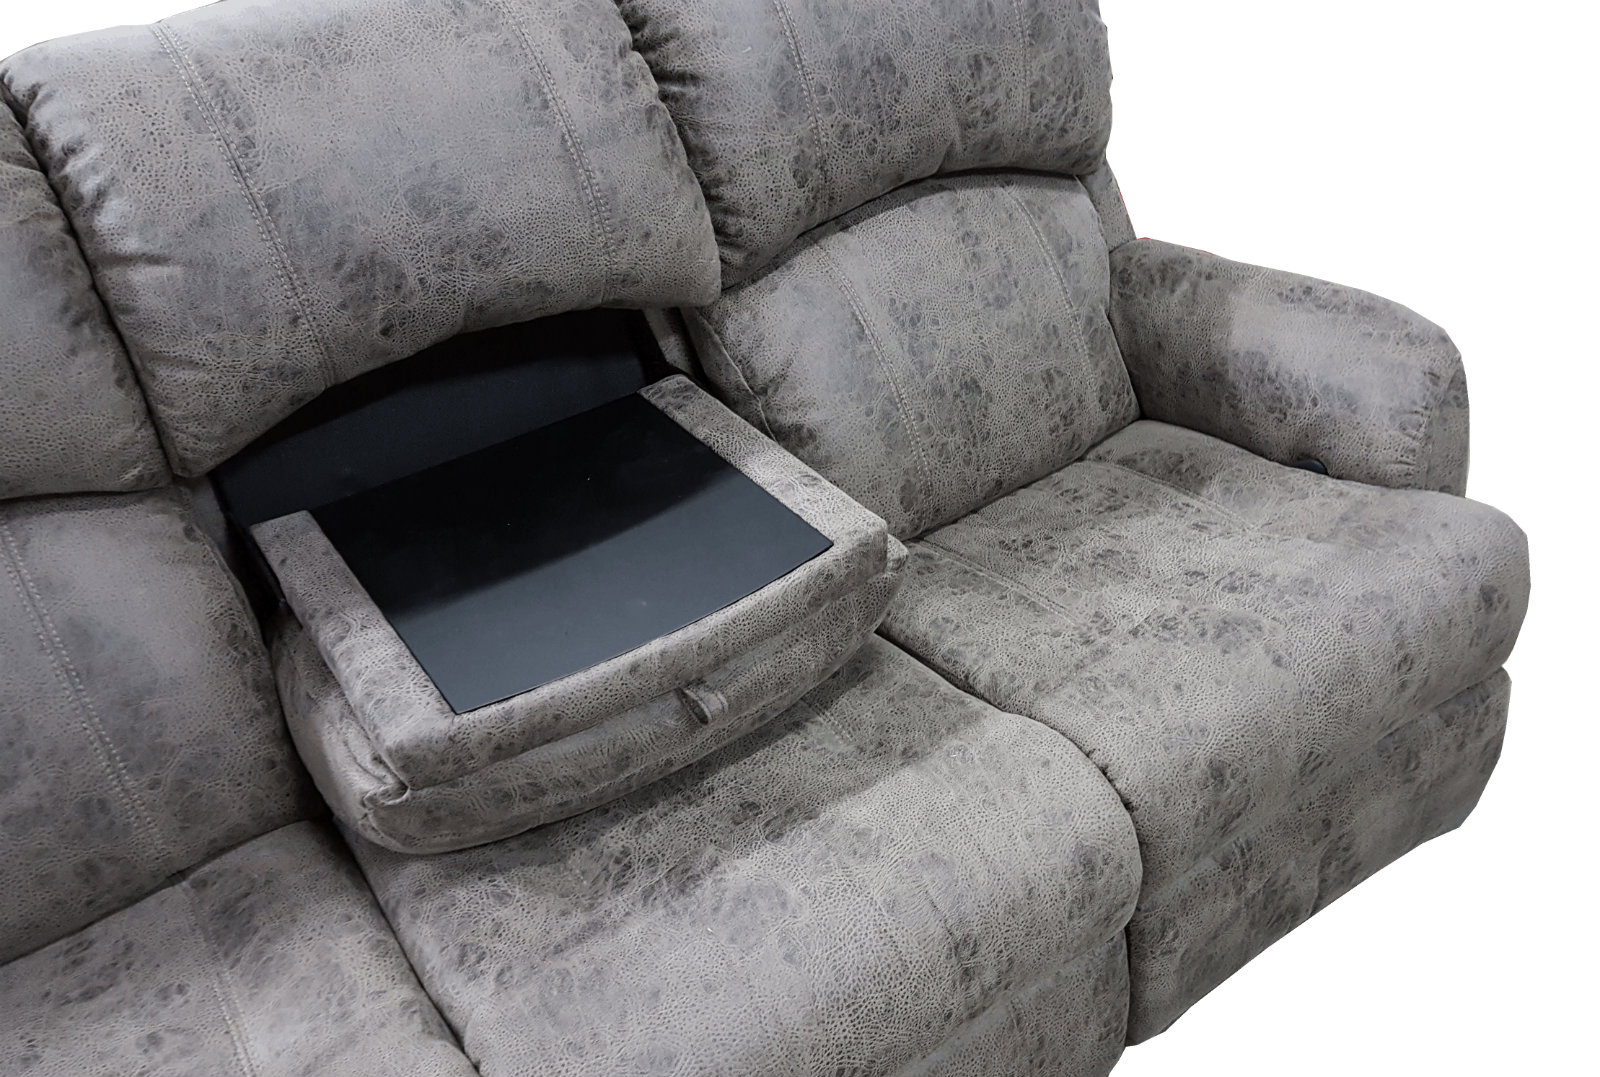 Sofa Recliner with Foldable Table